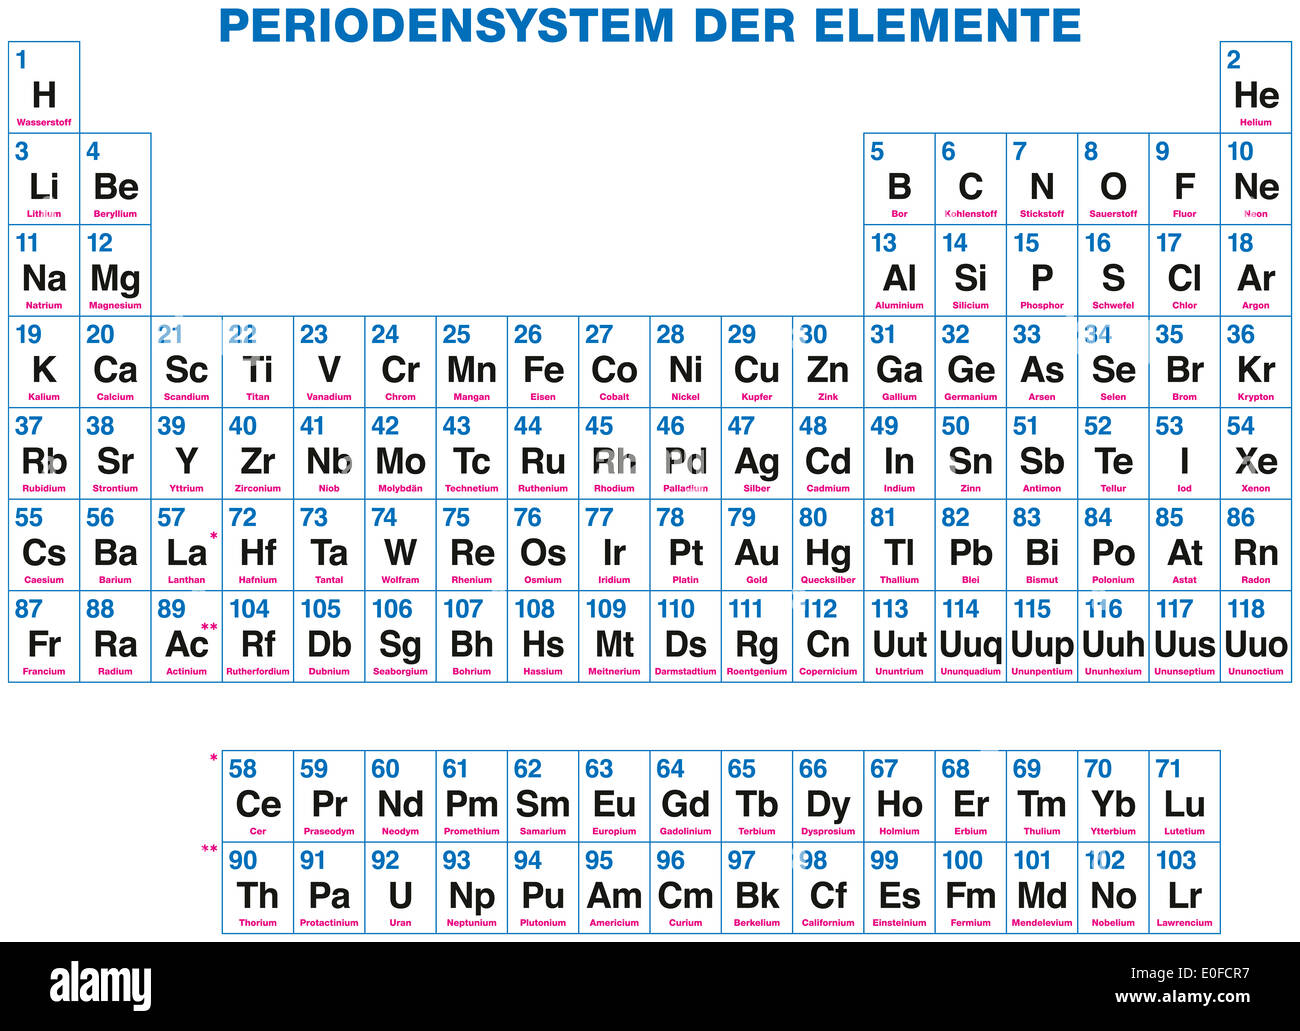 Periodic table of the elements german labeling 118 chemical periodic table of the elements german labeling 118 chemical elements organized on the basis of their atomic numbers urtaz Gallery